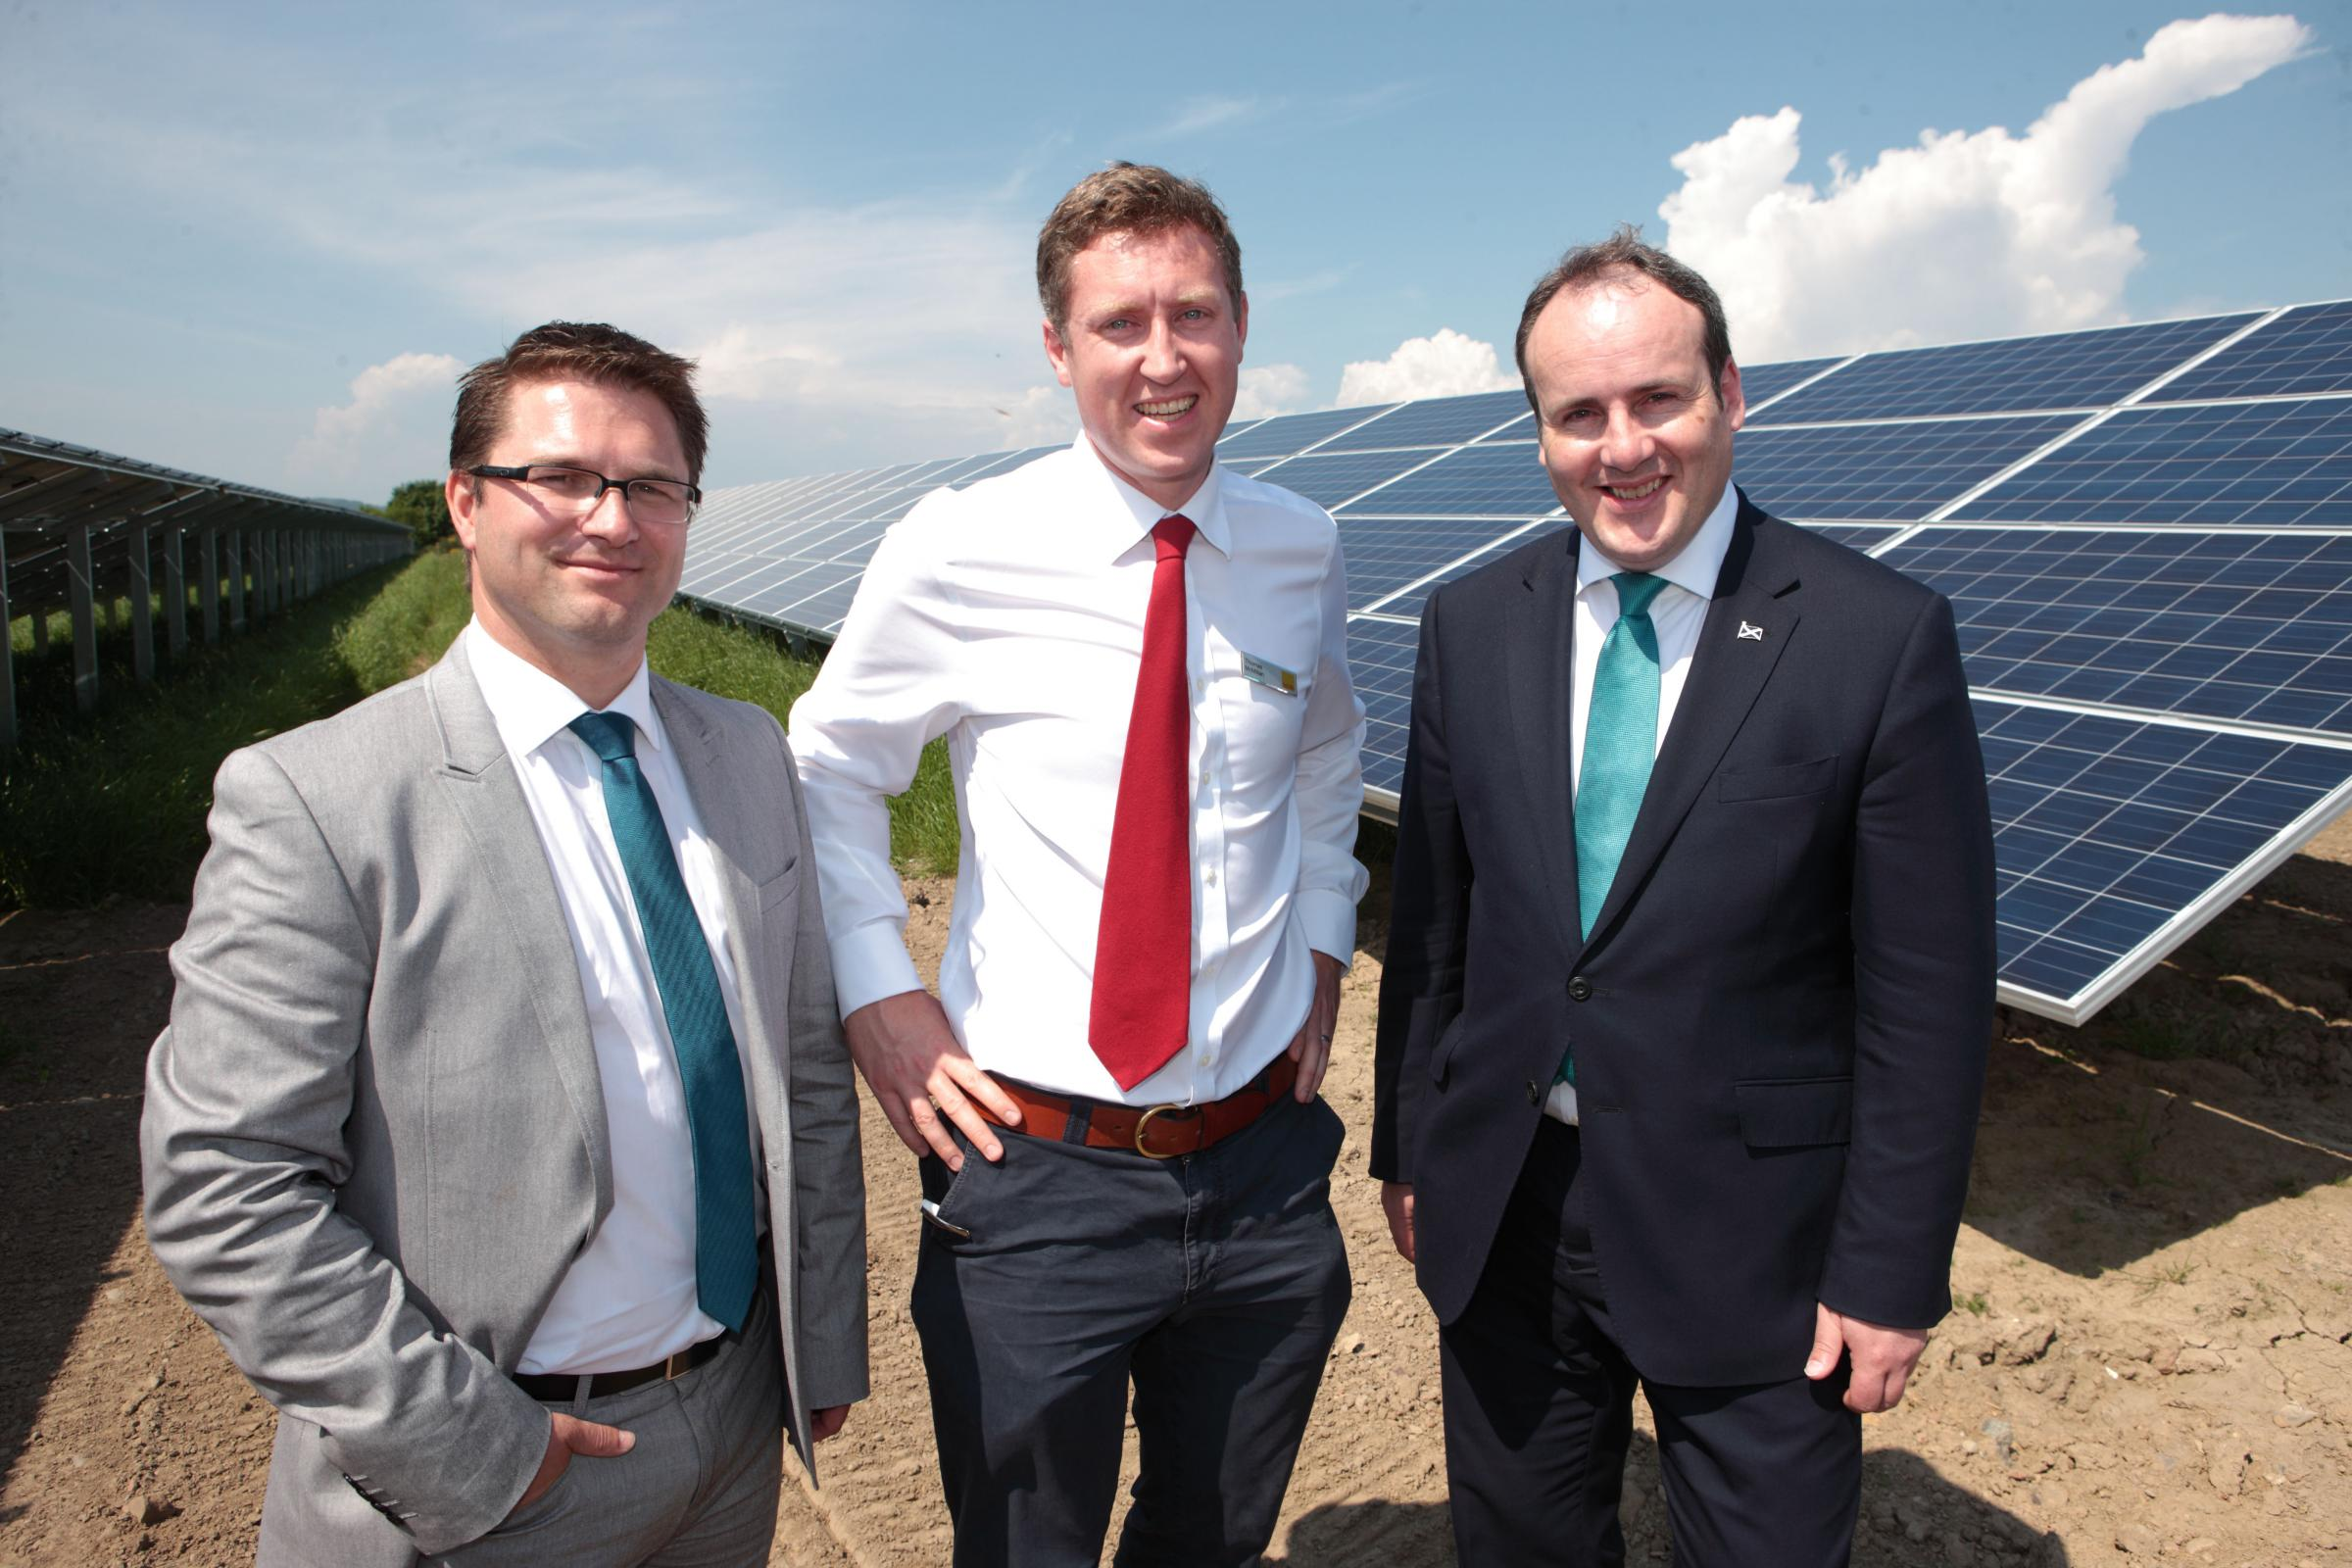 SUNSHINE BOYS Thomas McMillan (centre) and Scottish energy minister Paul Wheelhouse (right), at the opening of the Errol Estates solar farm by Chris Kopak of Canadian Solar (left)